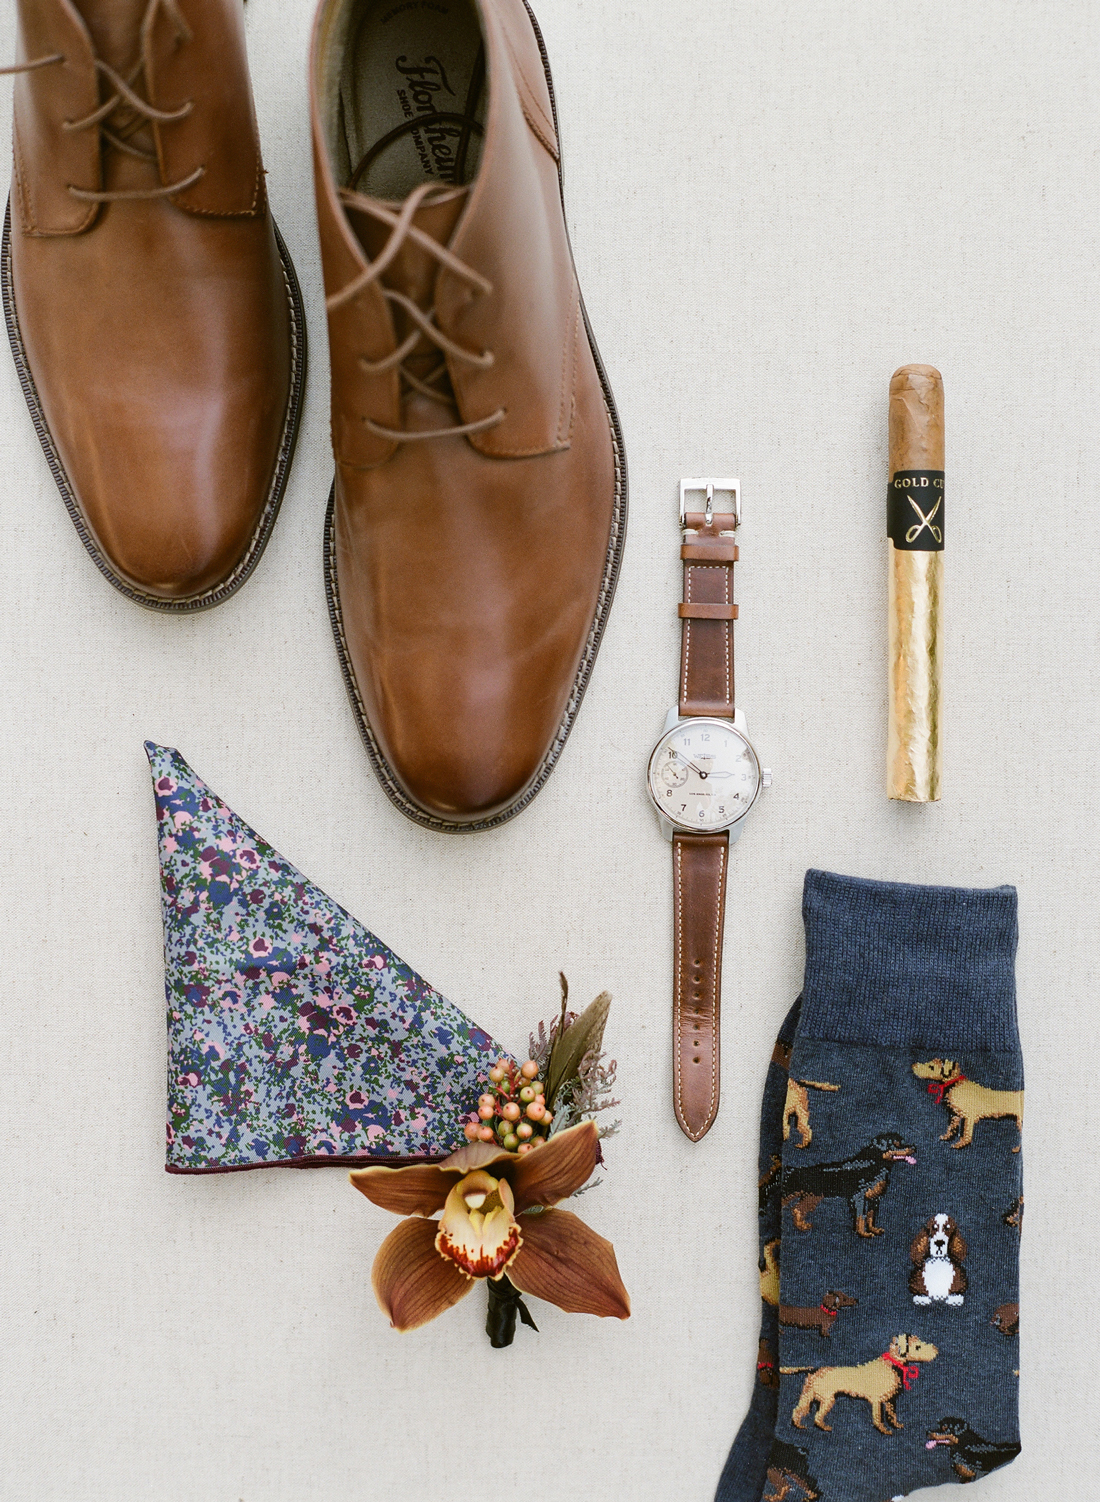 floral print pocket square, dog print socks, brown leather dress shoes and watch